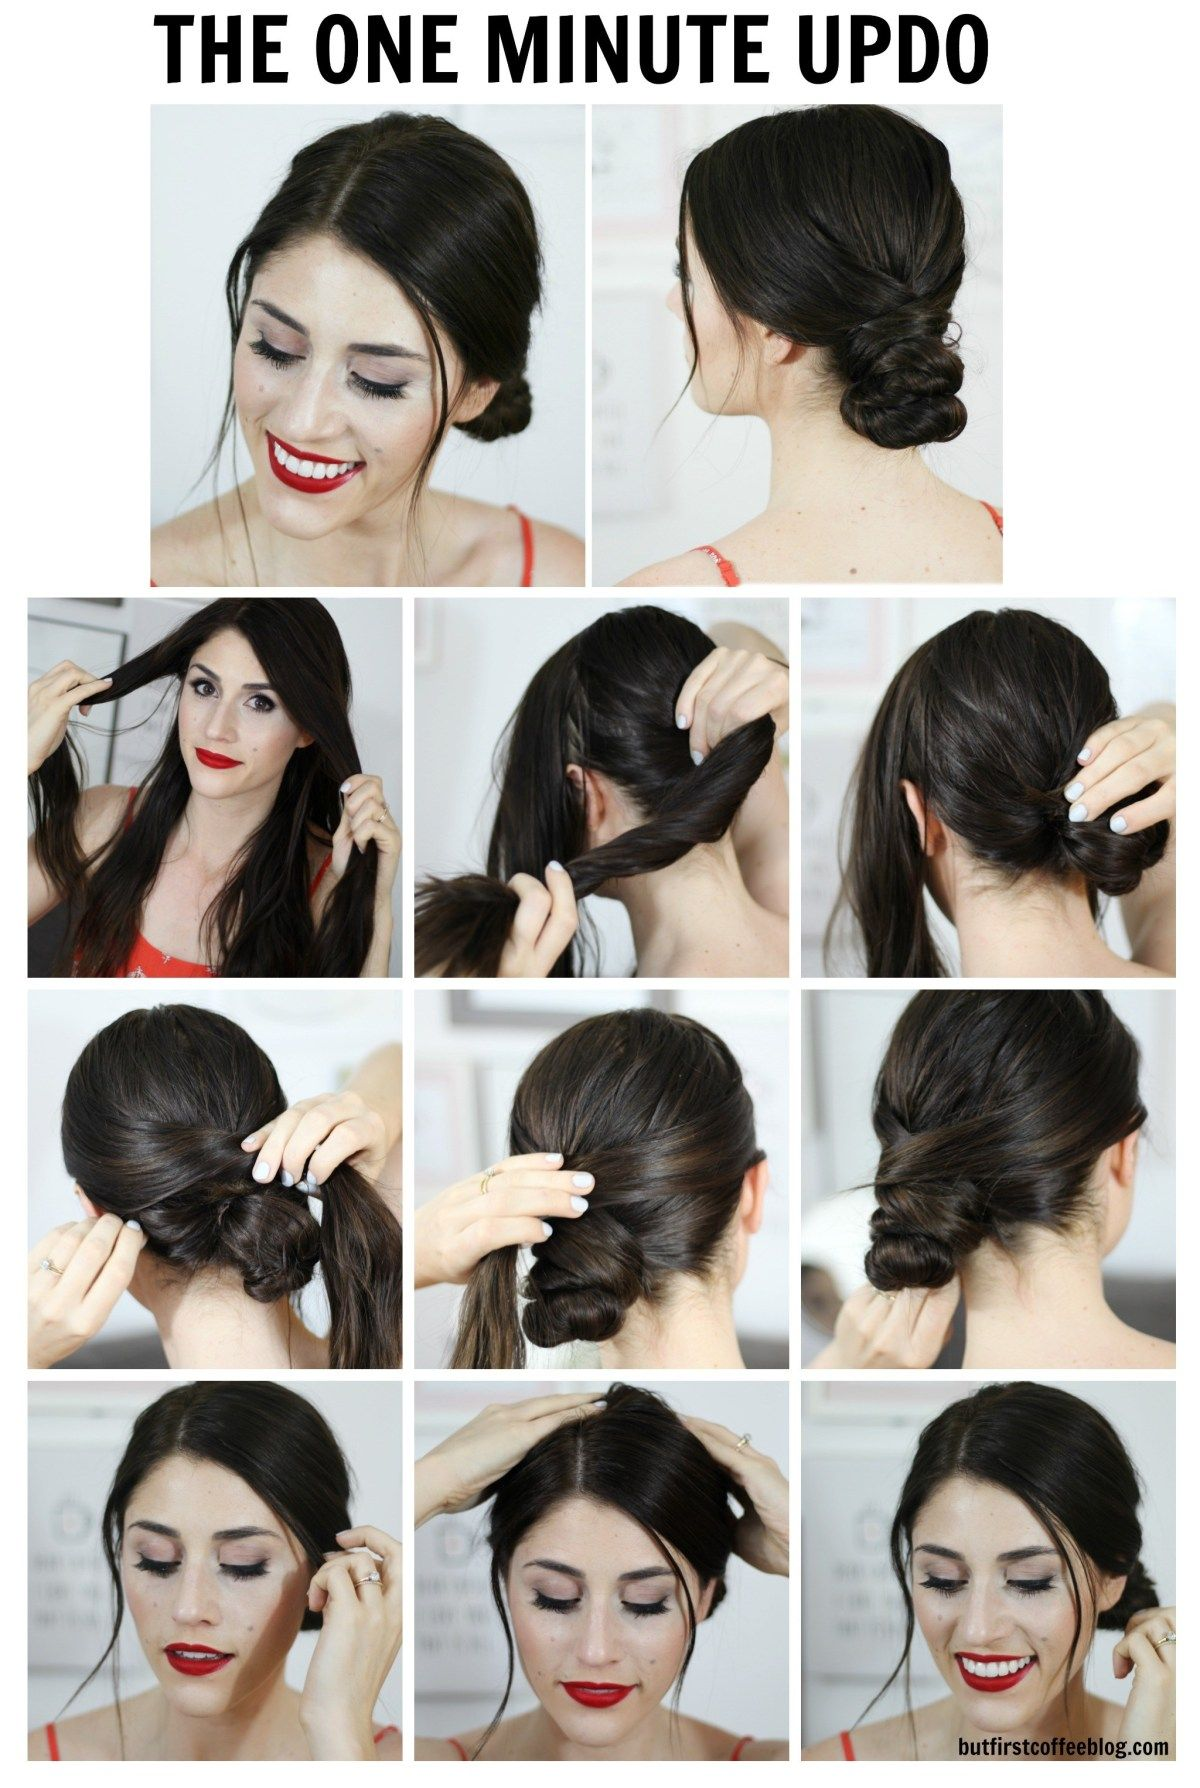 The One Minute Updo Super Simple Hairstyles Easy Hairstyles Short Hair Styles Easy Simple Updo Tutorial